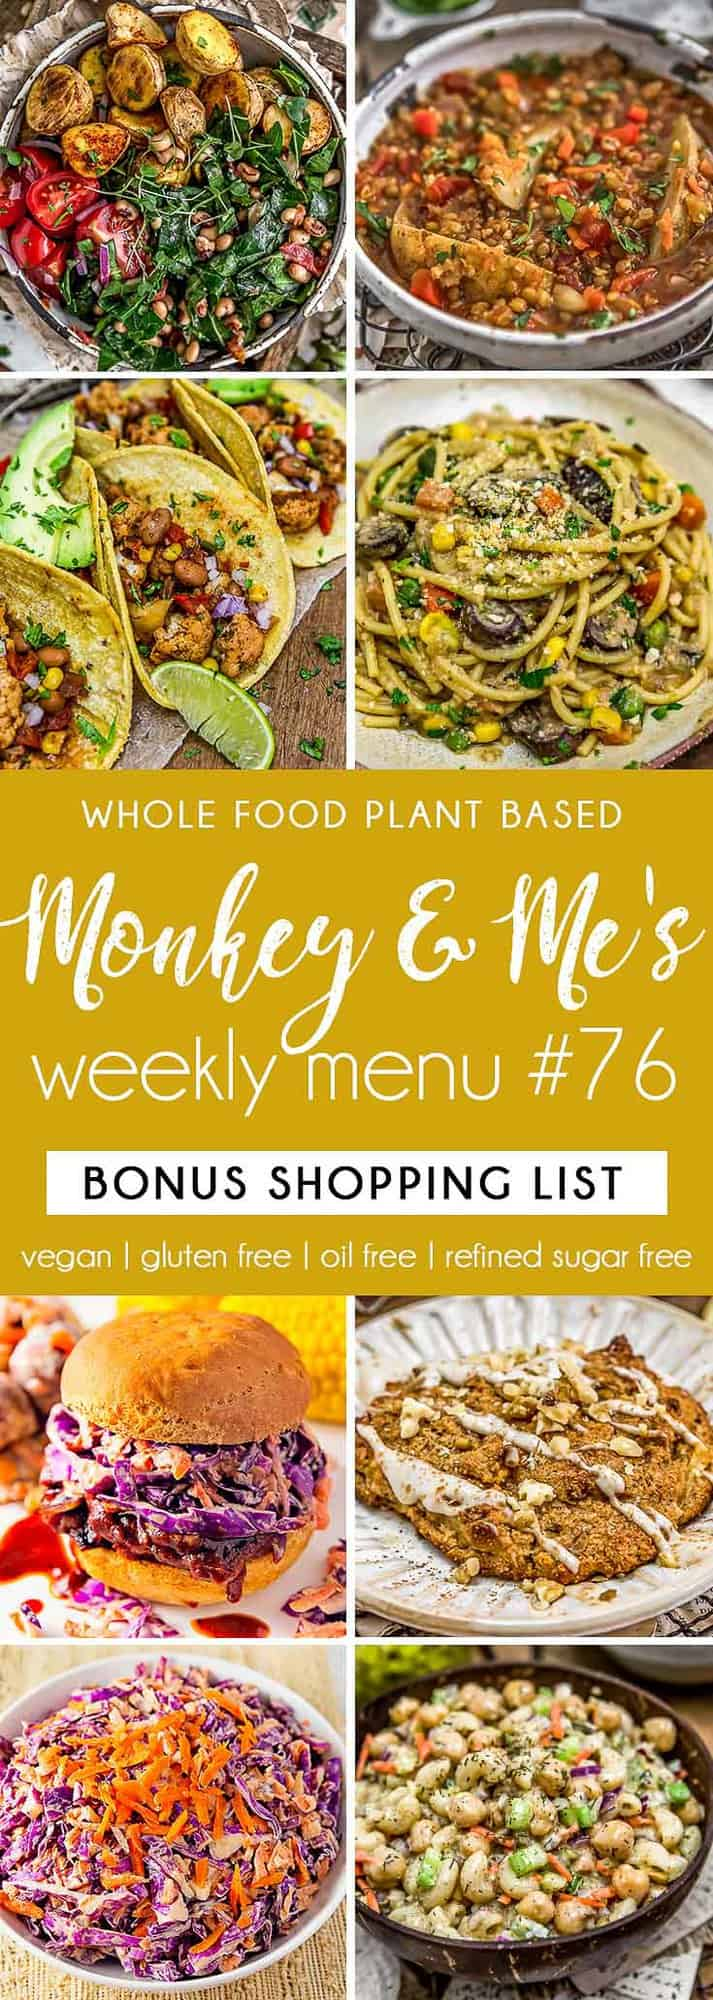 Monkey and Me's Menu 76 featuring 8 recipes